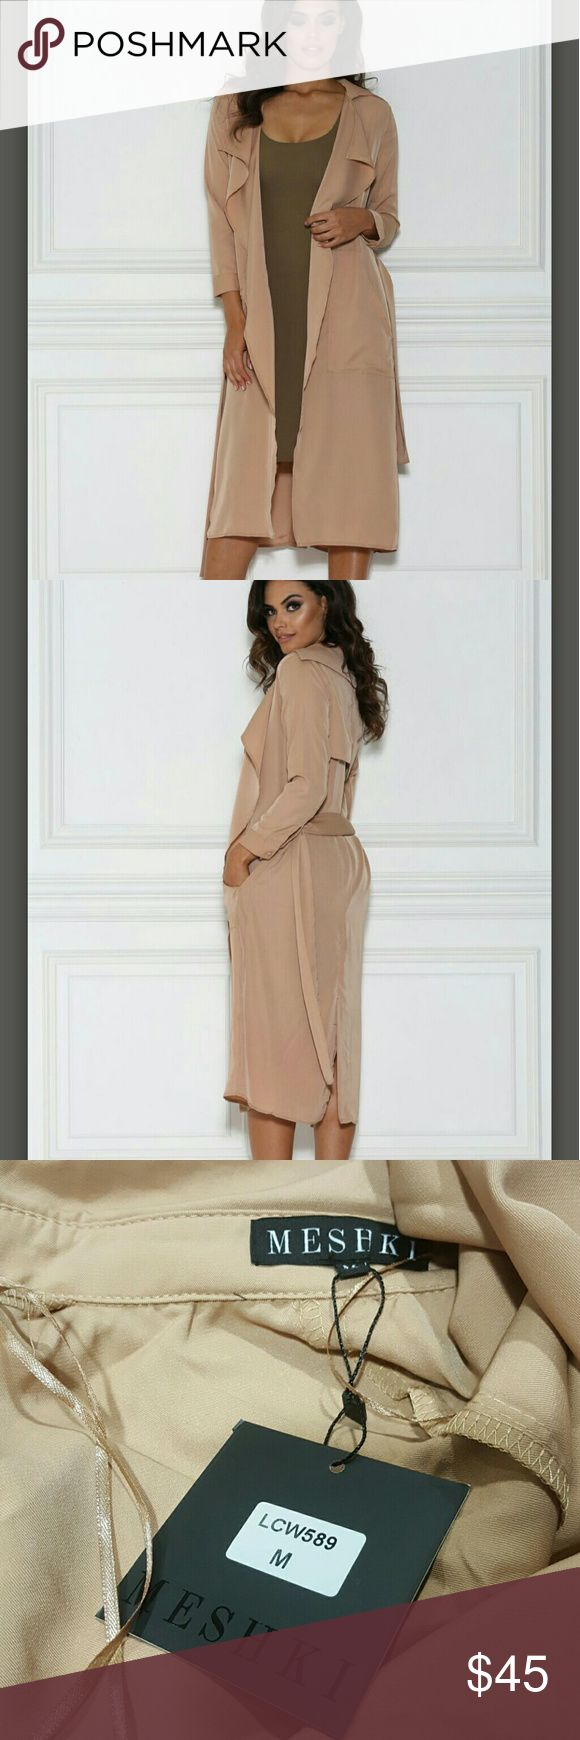 🛍 Meshki duster trench light coat camel DULCE DUSTER TRENCH COAT -Camel SIZE M  PRODUCT DESCRIPTION - This flowy and lightweight coat can be a luxe addition to any closet. Pair with a bodycon dress, like our Sia Dress, or wear over your outfit for the night out. Either way, this coat can make any outfit instantly classy.   Camel Monika is 5'9/175.5cm and wears a XS 65% cotton, 35% polyester Length: 121cm, based on XS Meshki Jackets & Coats